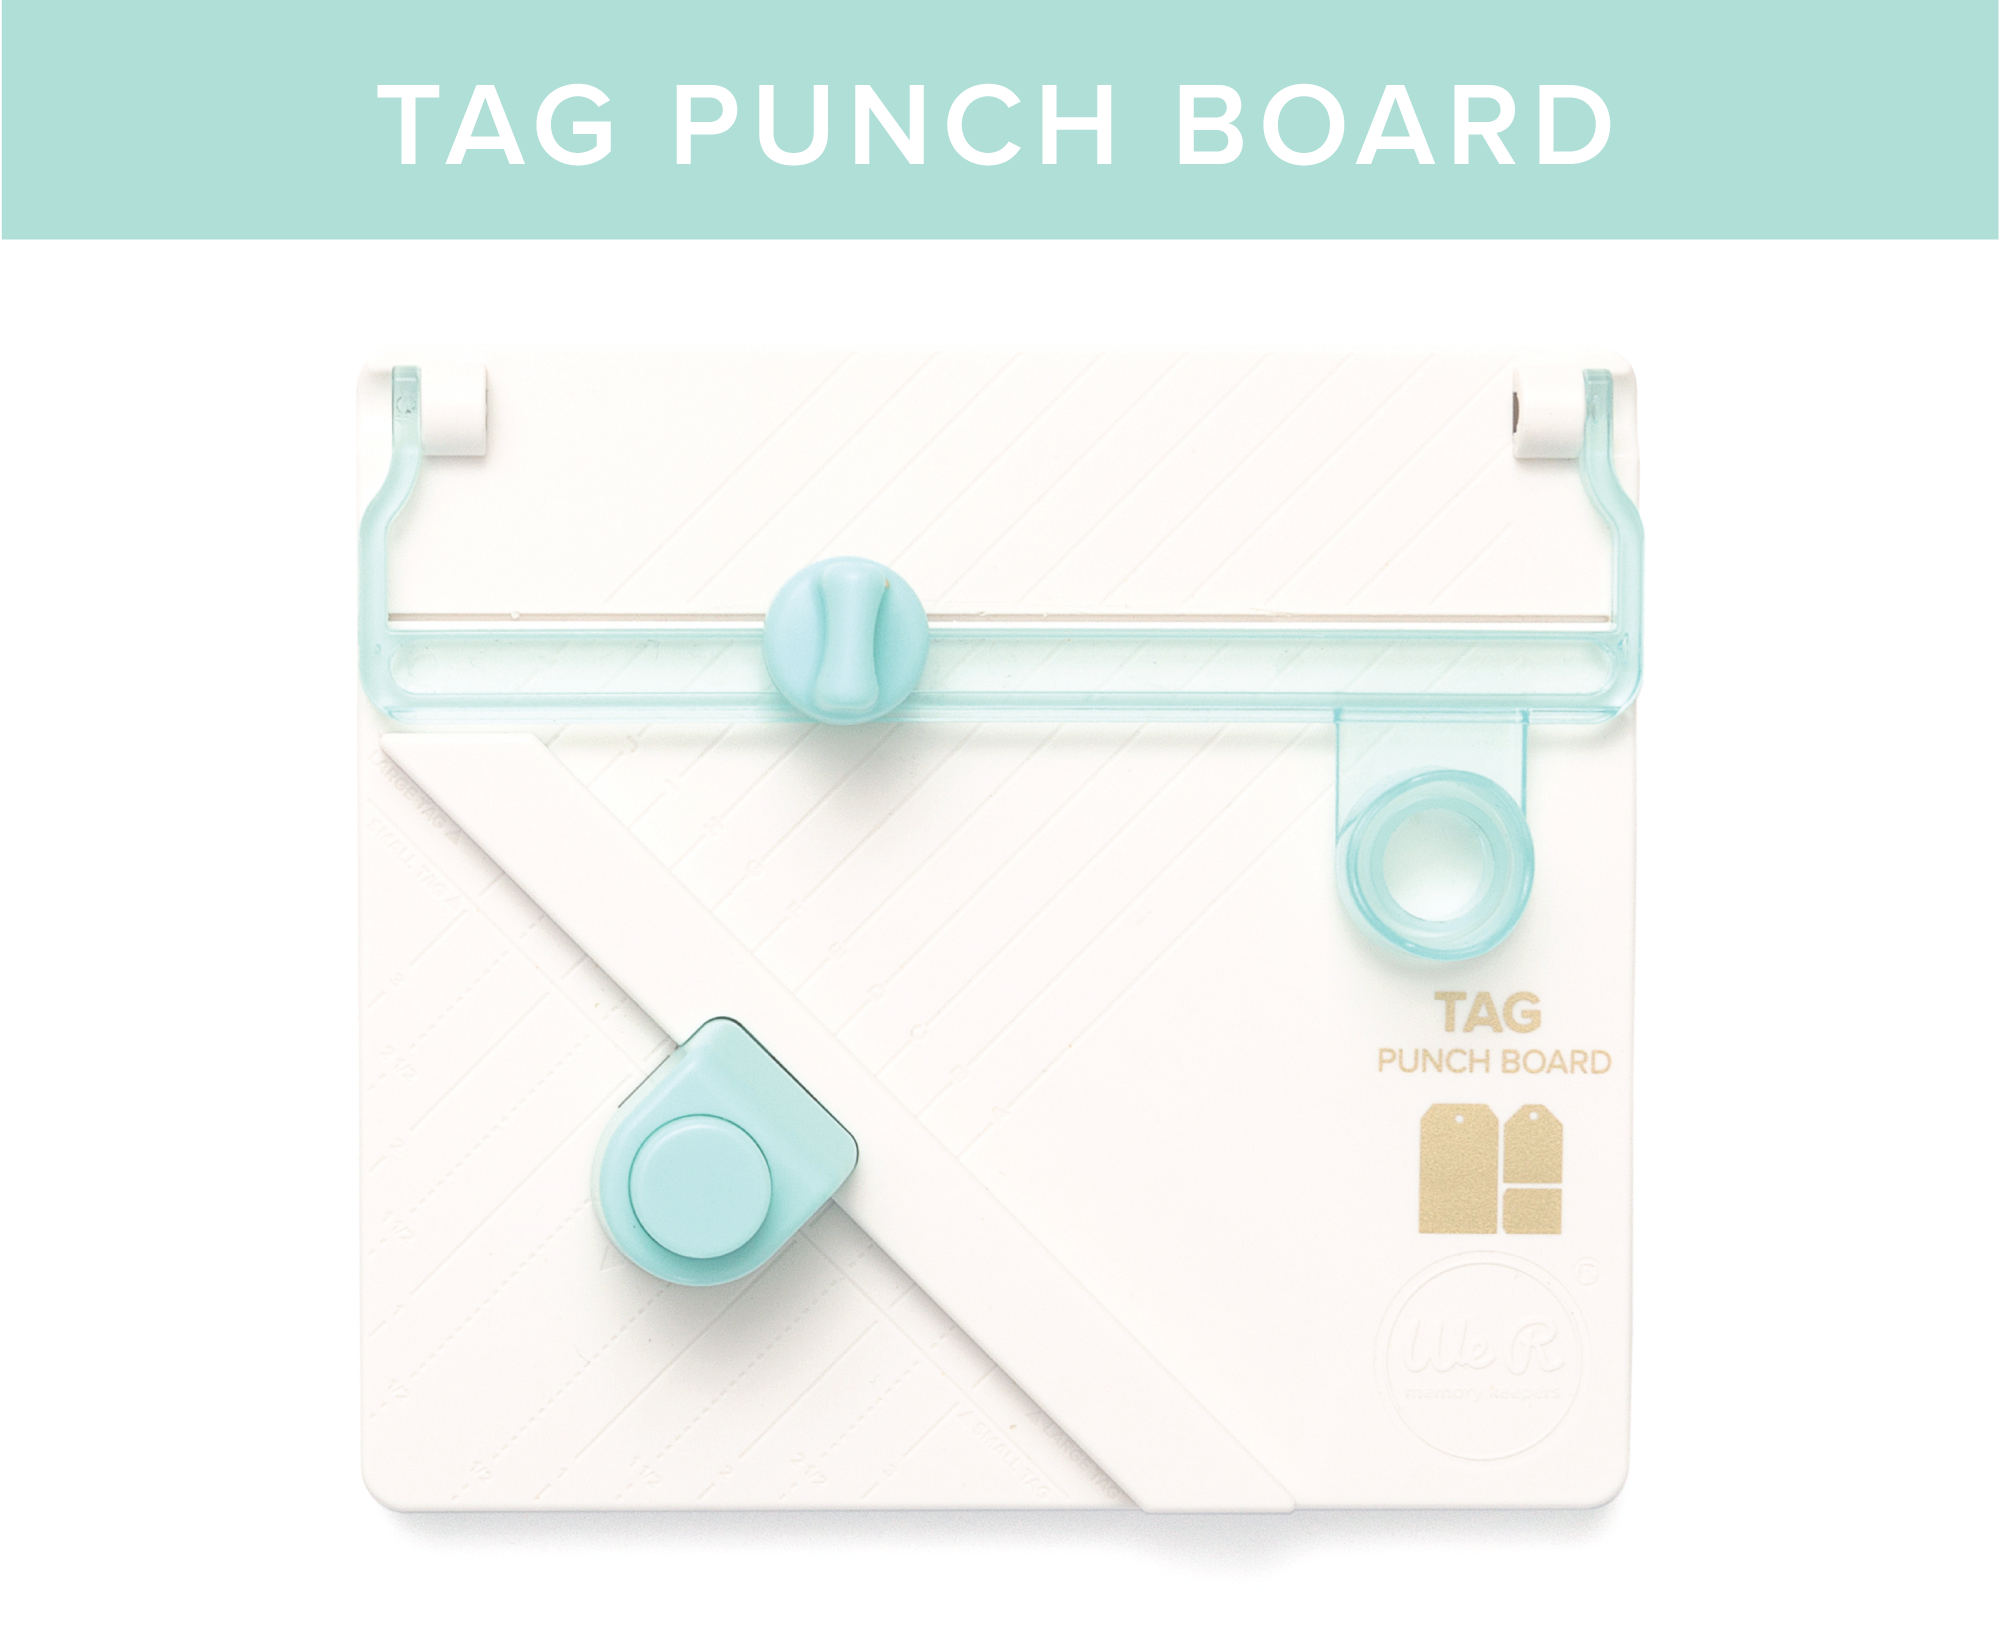 WR_PunchBoards_Instructions_Links_TagPB